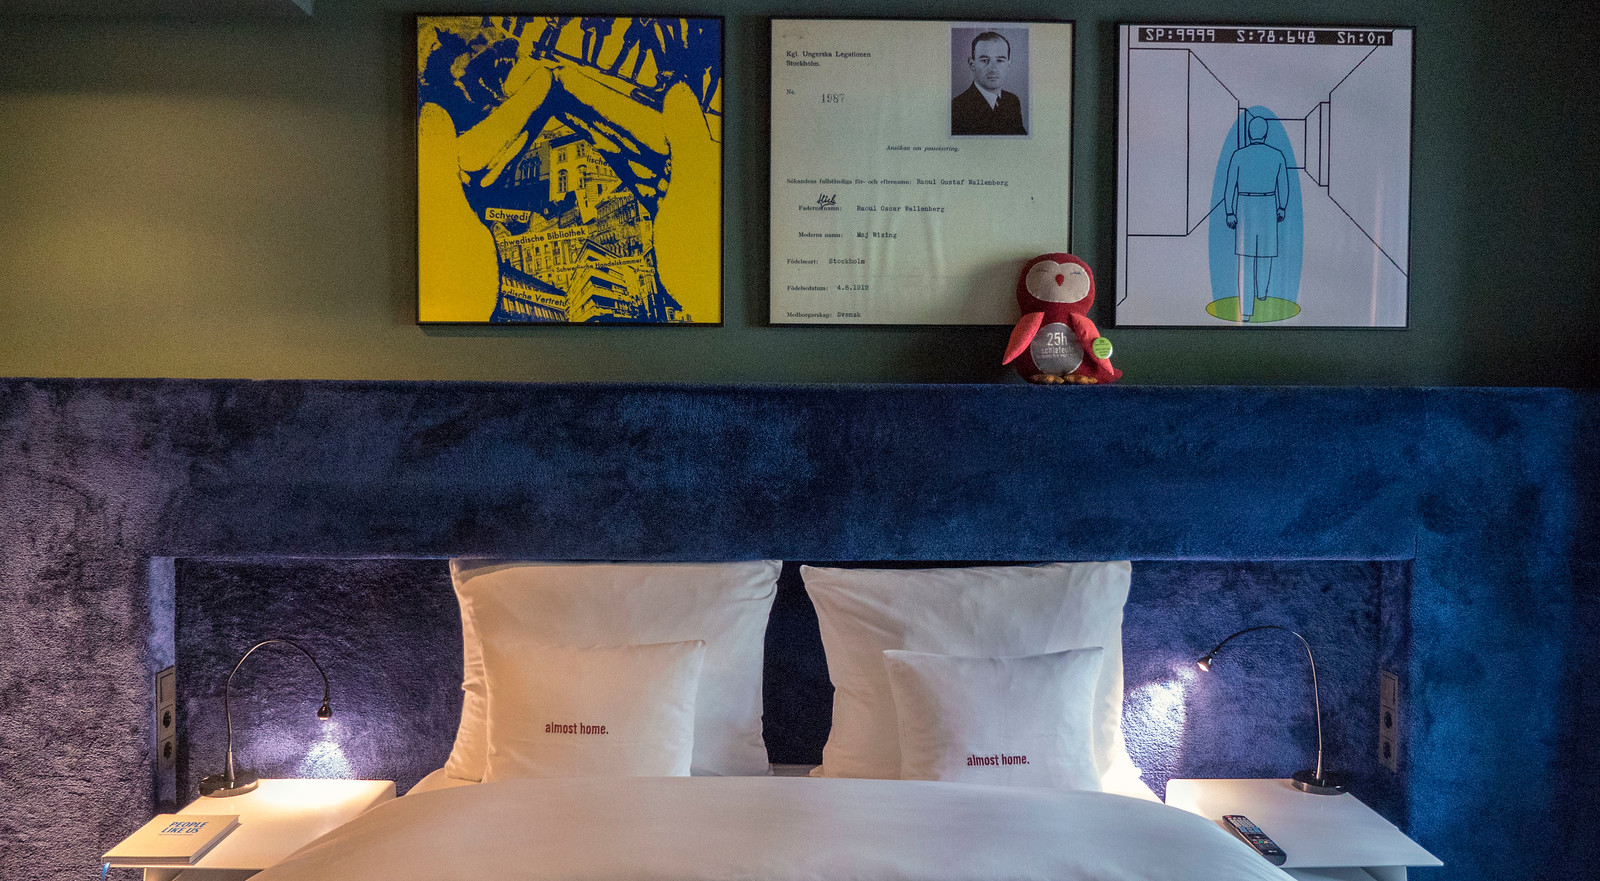 25Hours Hotel The Goldman: Artsy Place to Stay in Frankfurt